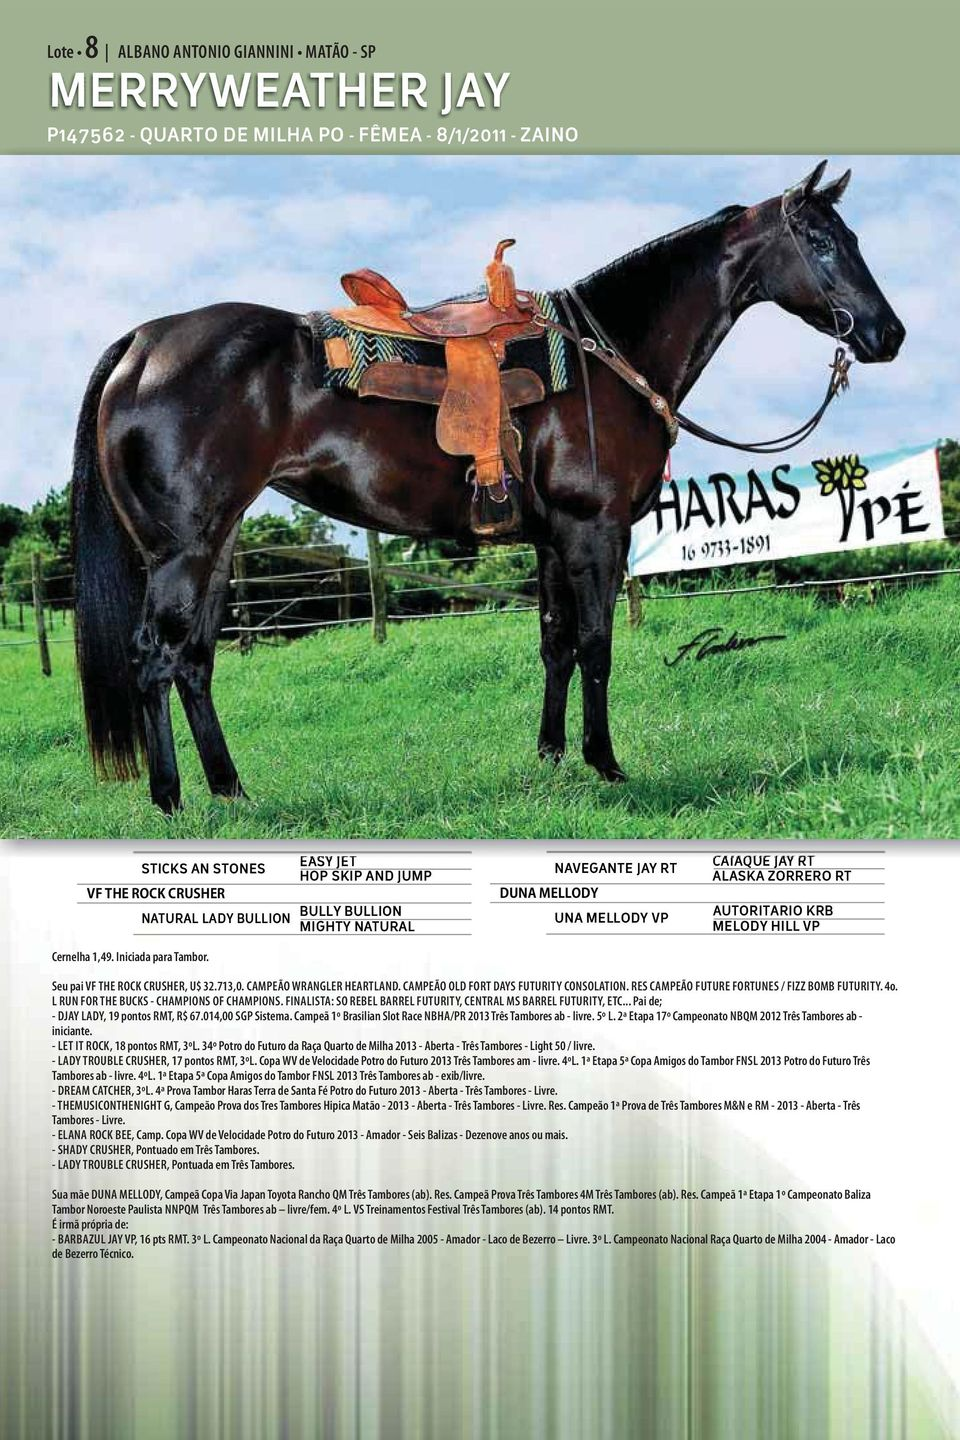 THE ROCK CRUSHER, U$ 32.713,0. CAMPEÃO WRANGLER HEARTLAND. CAMPEÃO OLD FORT DAYS FUTURITY CONSOLATION. RES CAMPEÃO FUTURE FORTUNES / FIZZ BOMB FUTURITY. 4o.